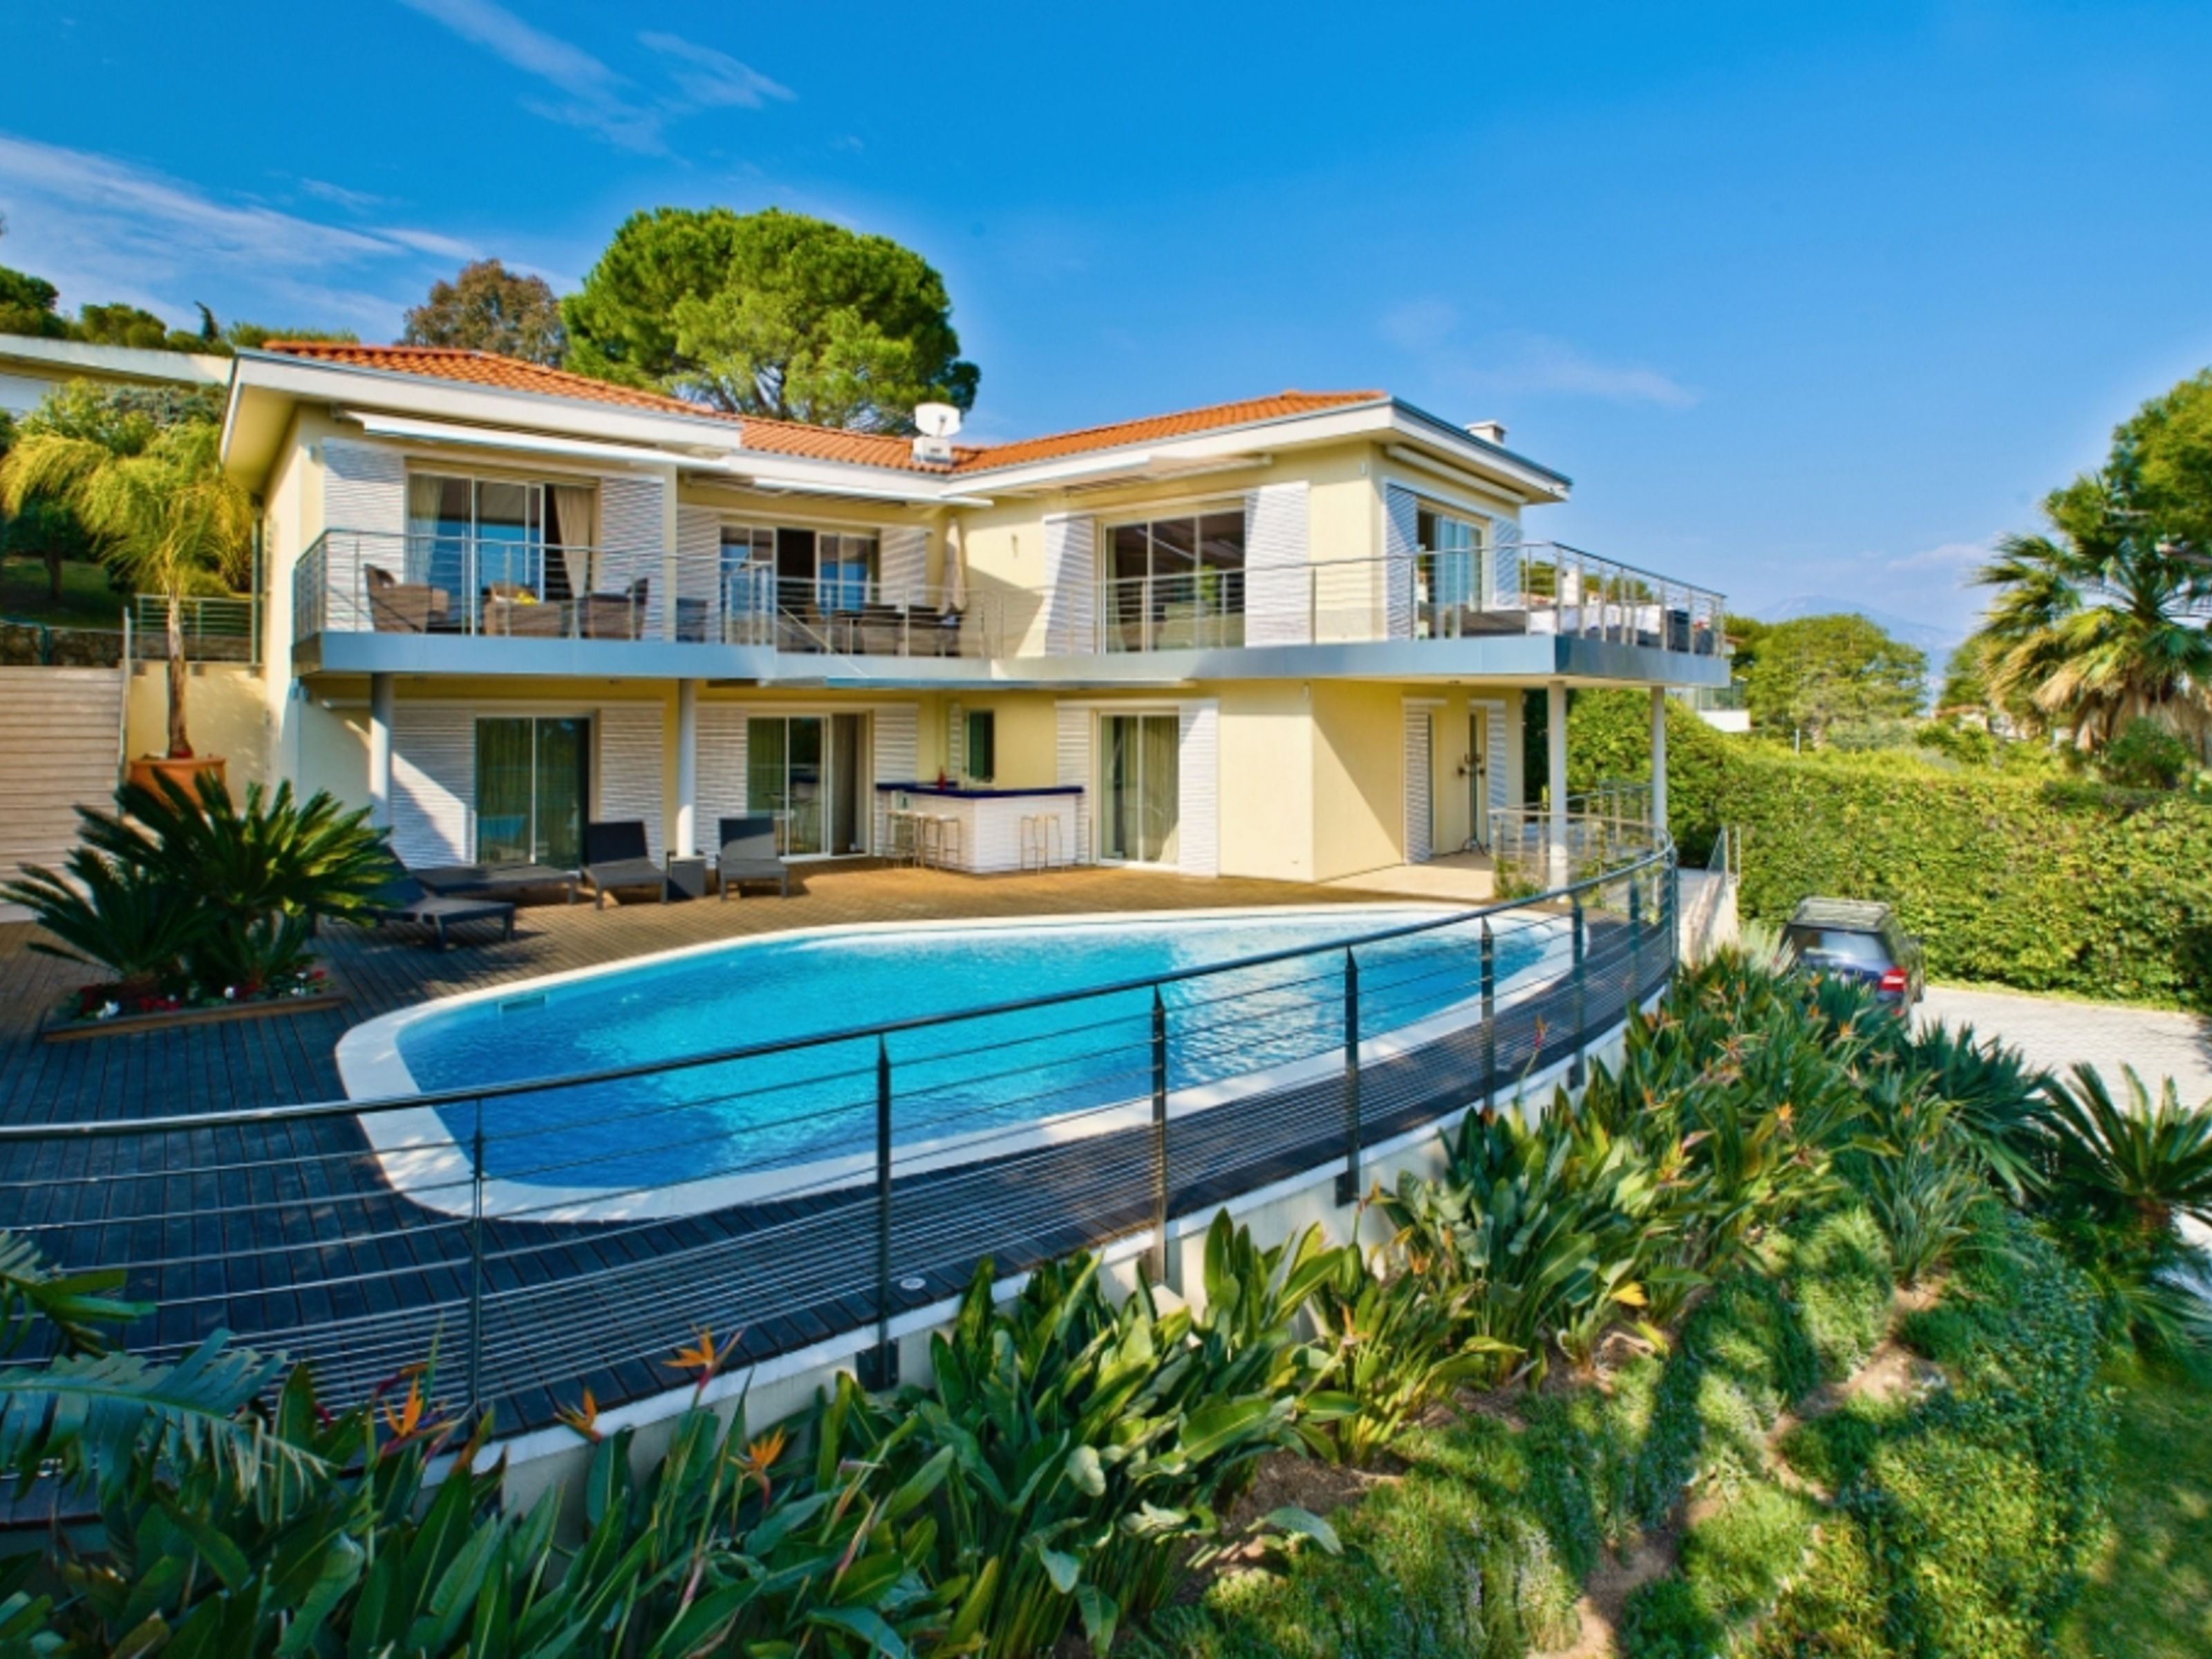 独户住宅 为 出租 在 Beautifully renovated property to rent in the proximity of Grand Hotel Saint Jean Cap Ferrat Saint Jean Cap Ferrat, 普罗旺斯阿尔卑斯蓝色海岸 06230 法国